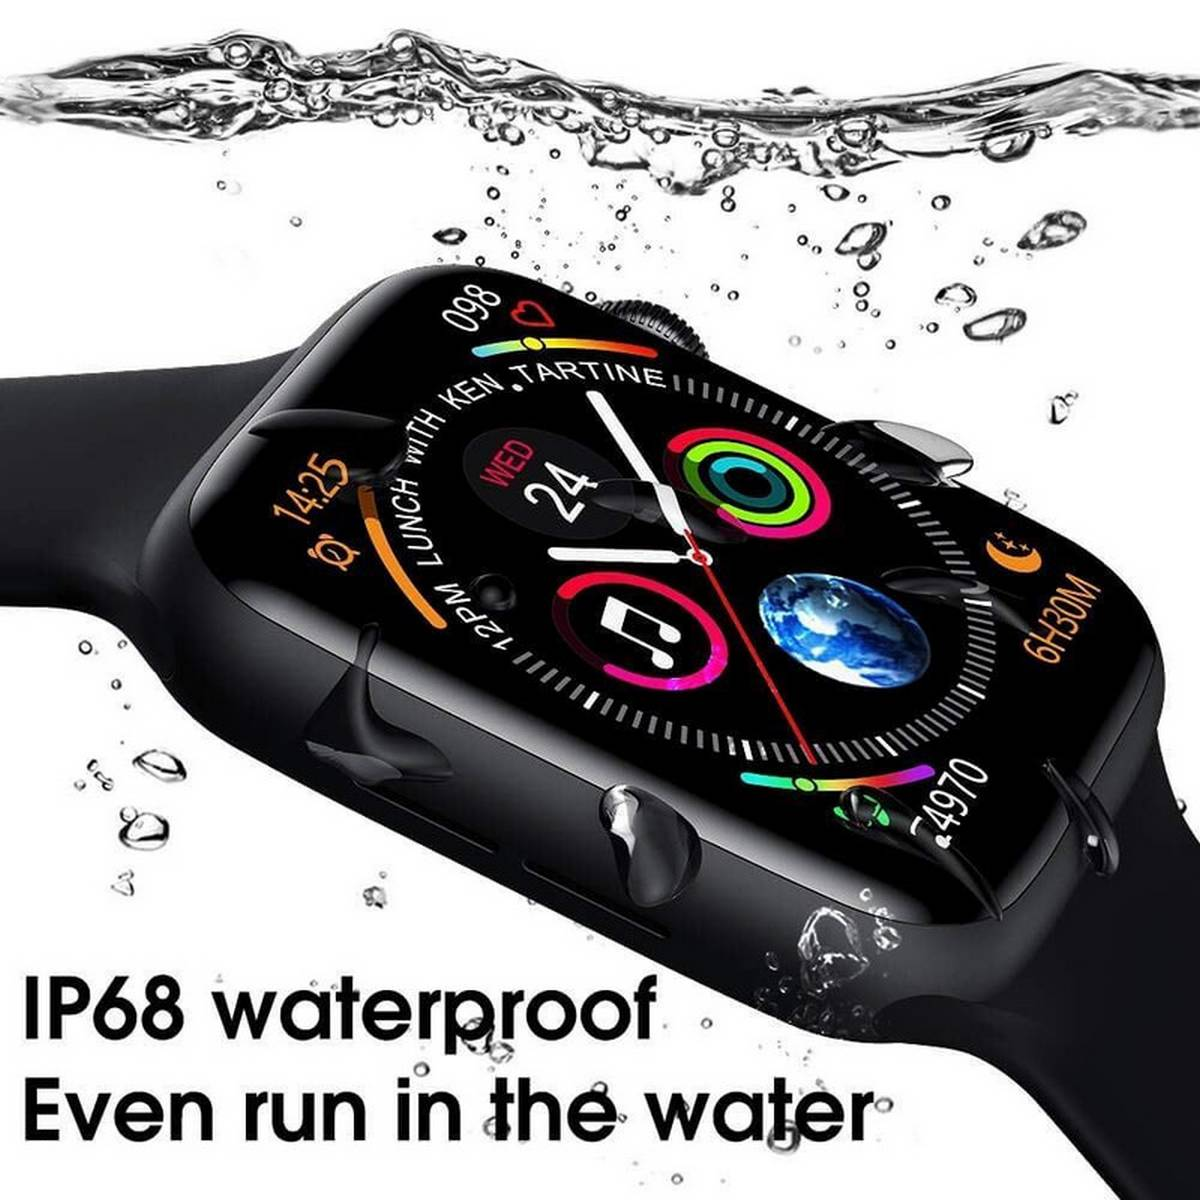 Advanced Version T-500 Fitness Bluetooth Smart Watch Digital Wrist Sports Watch For iPhone Android Samsung Nokia Hauwei and Mi Phones